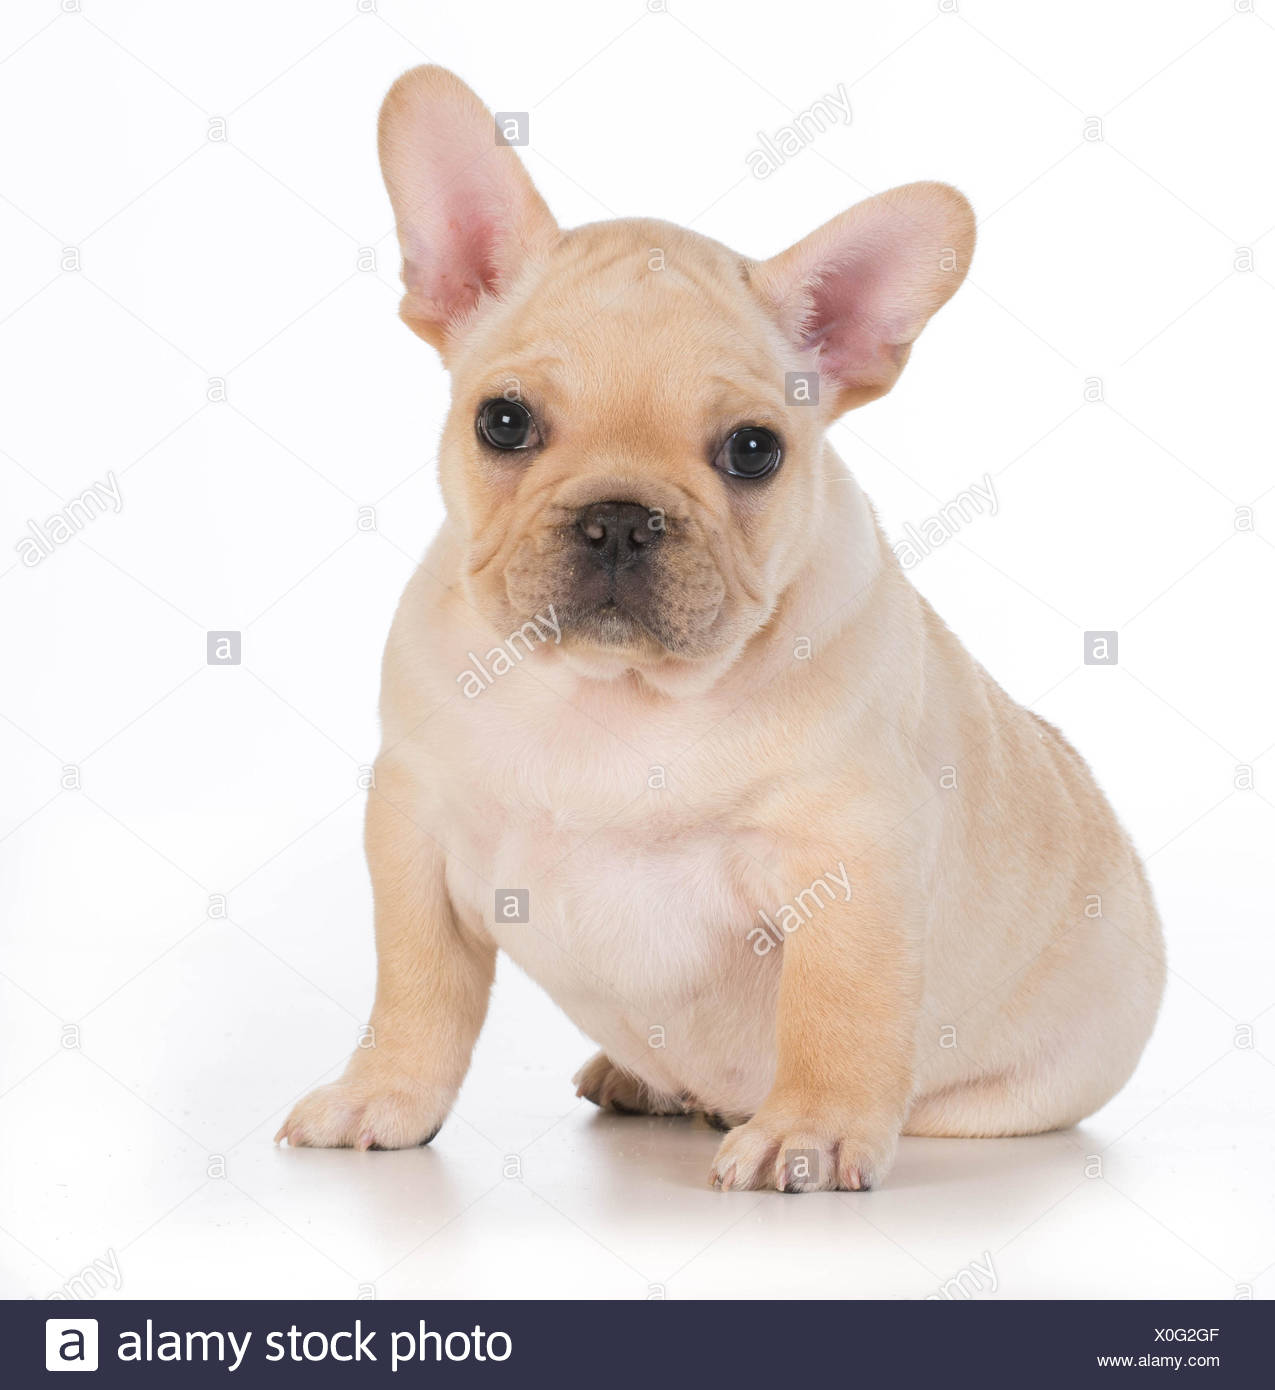 Cute Puppy French Bulldog Puppy Sitting Looking At Viewer 7